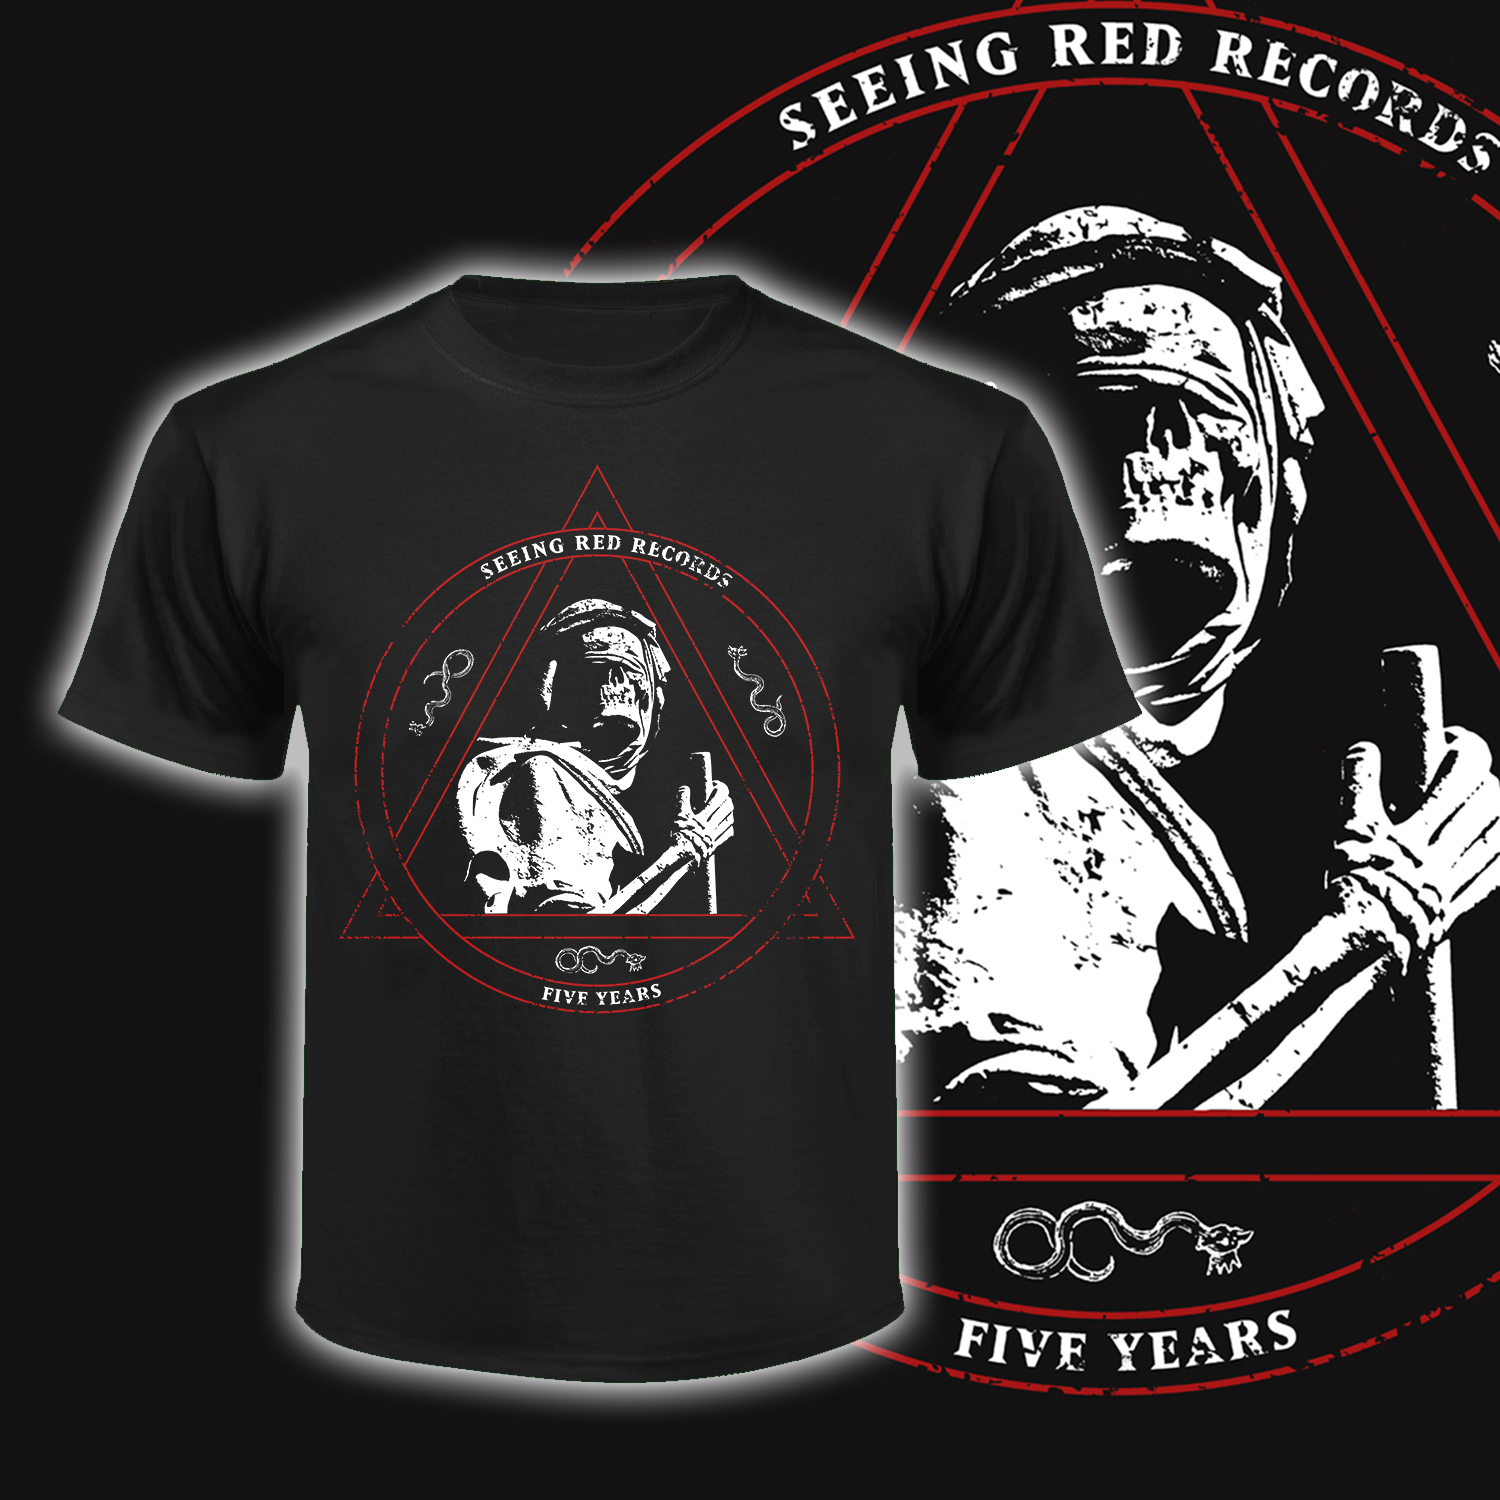 Seeing Red Records - 5 Year Anniversary